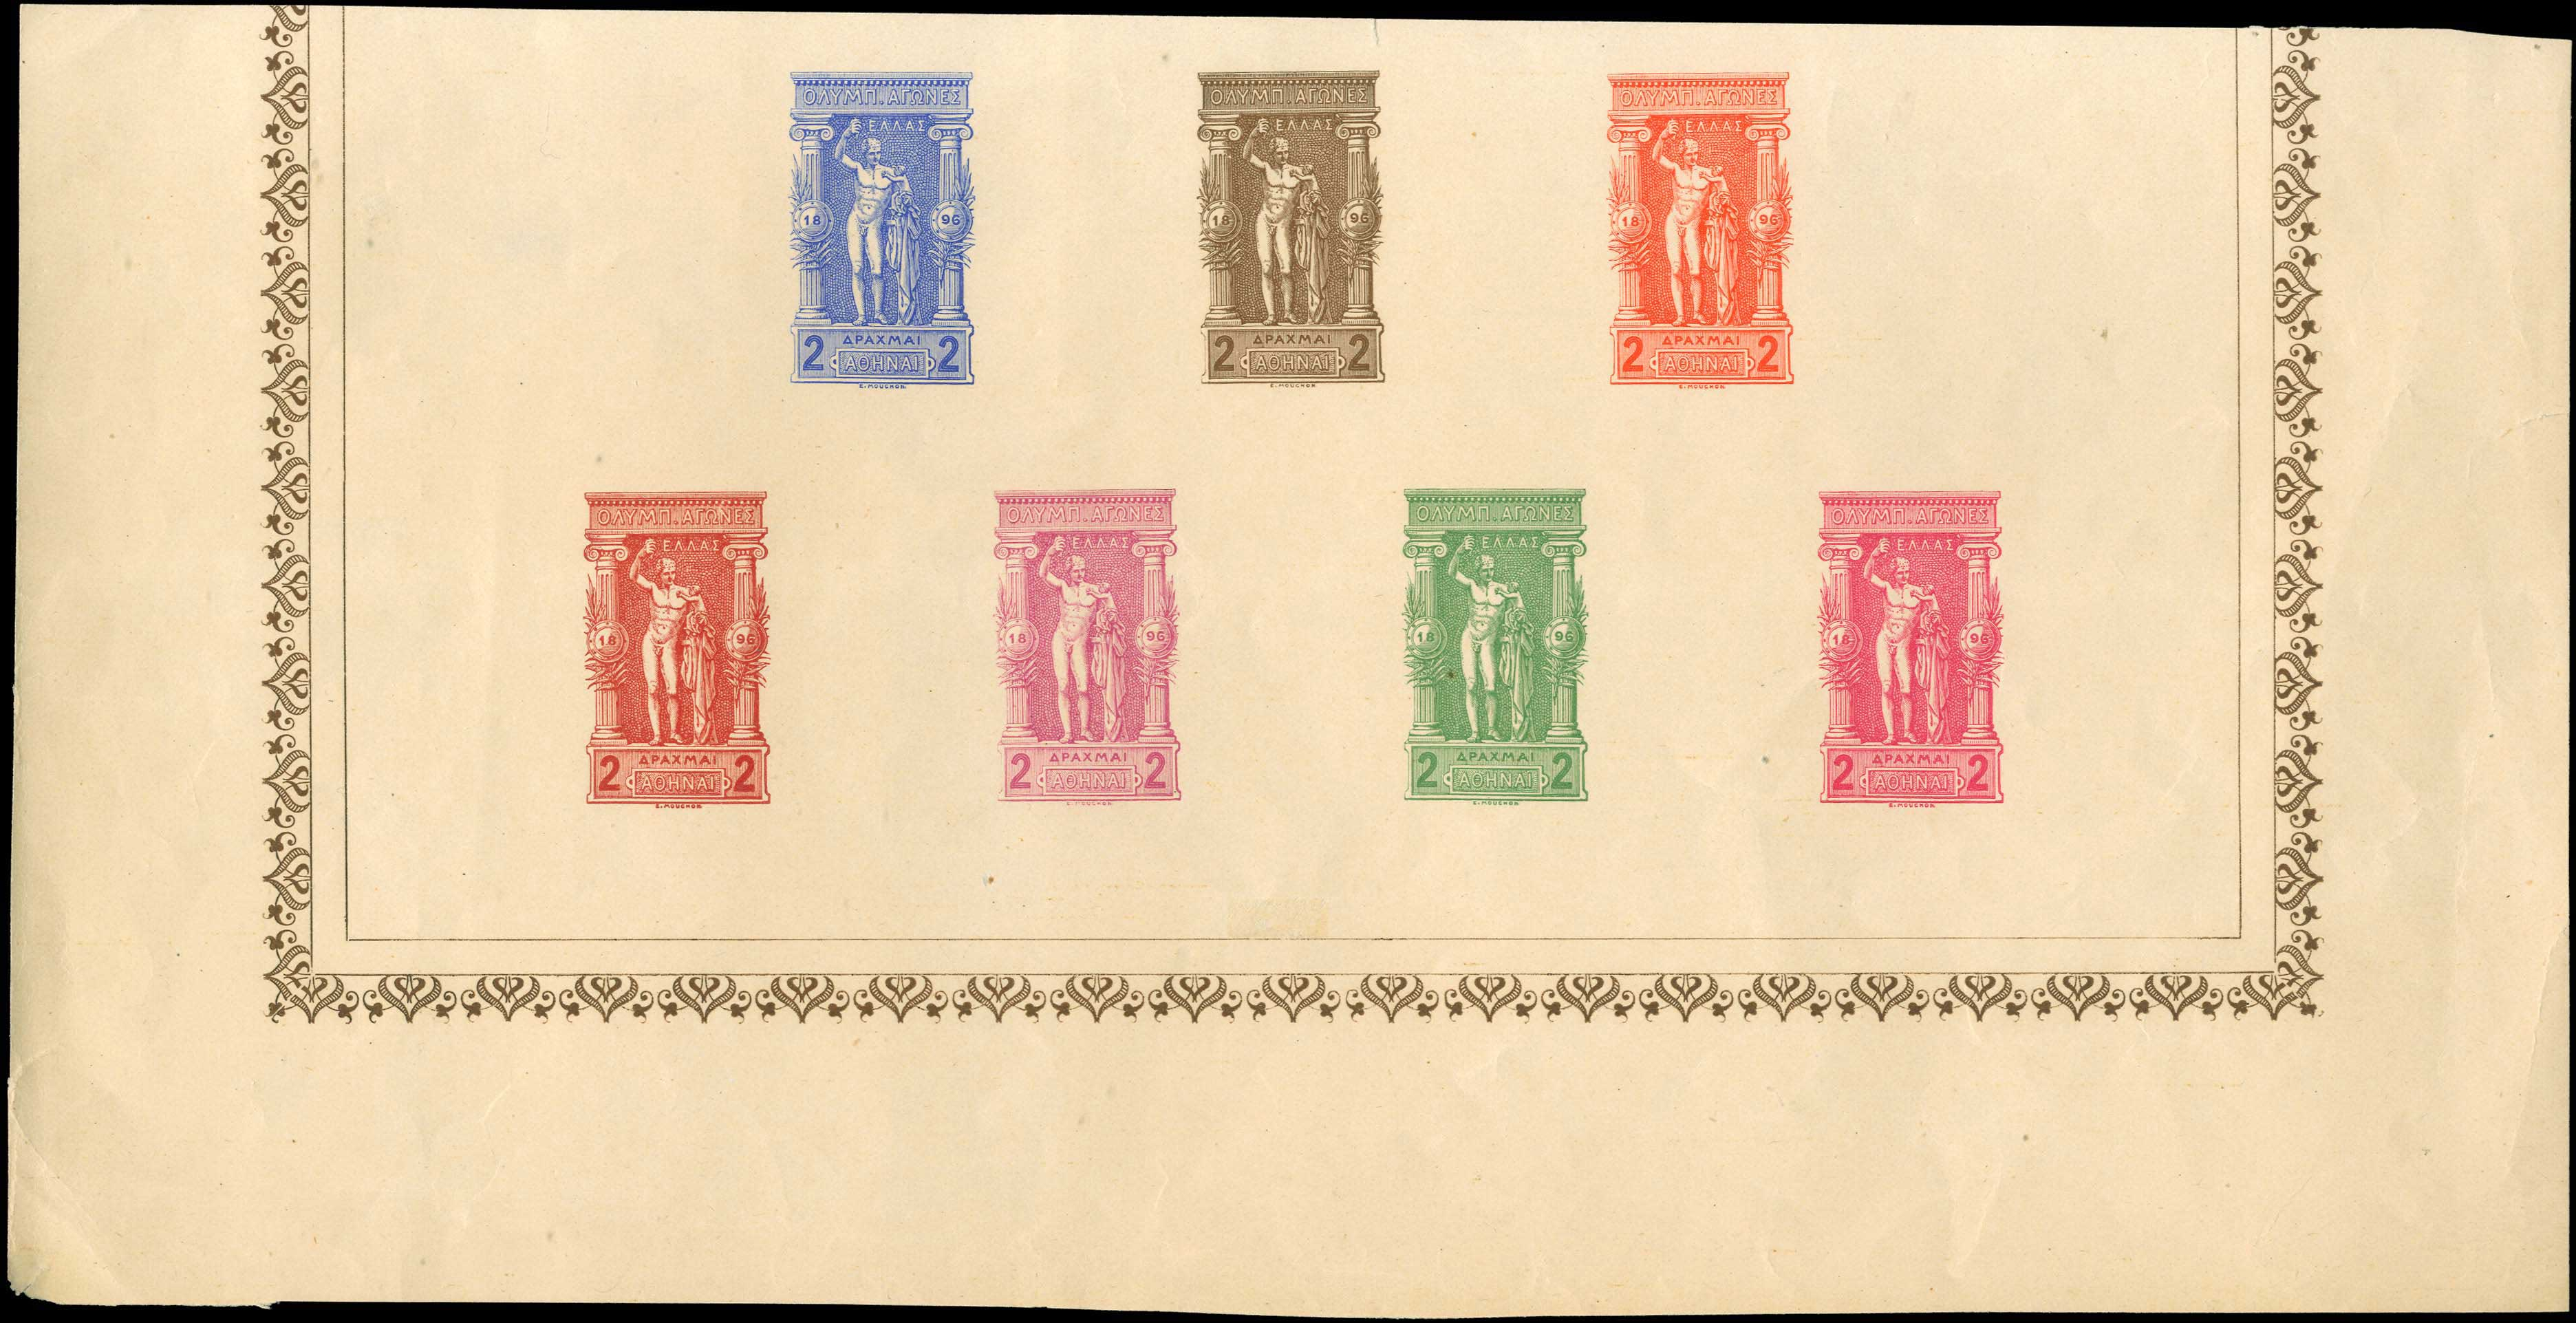 Lot 385 - -  1896 FIRST OLYMPIC GAMES 1896 first olympic games -  A. Karamitsos Public Auction 668 General Philatelic Auction